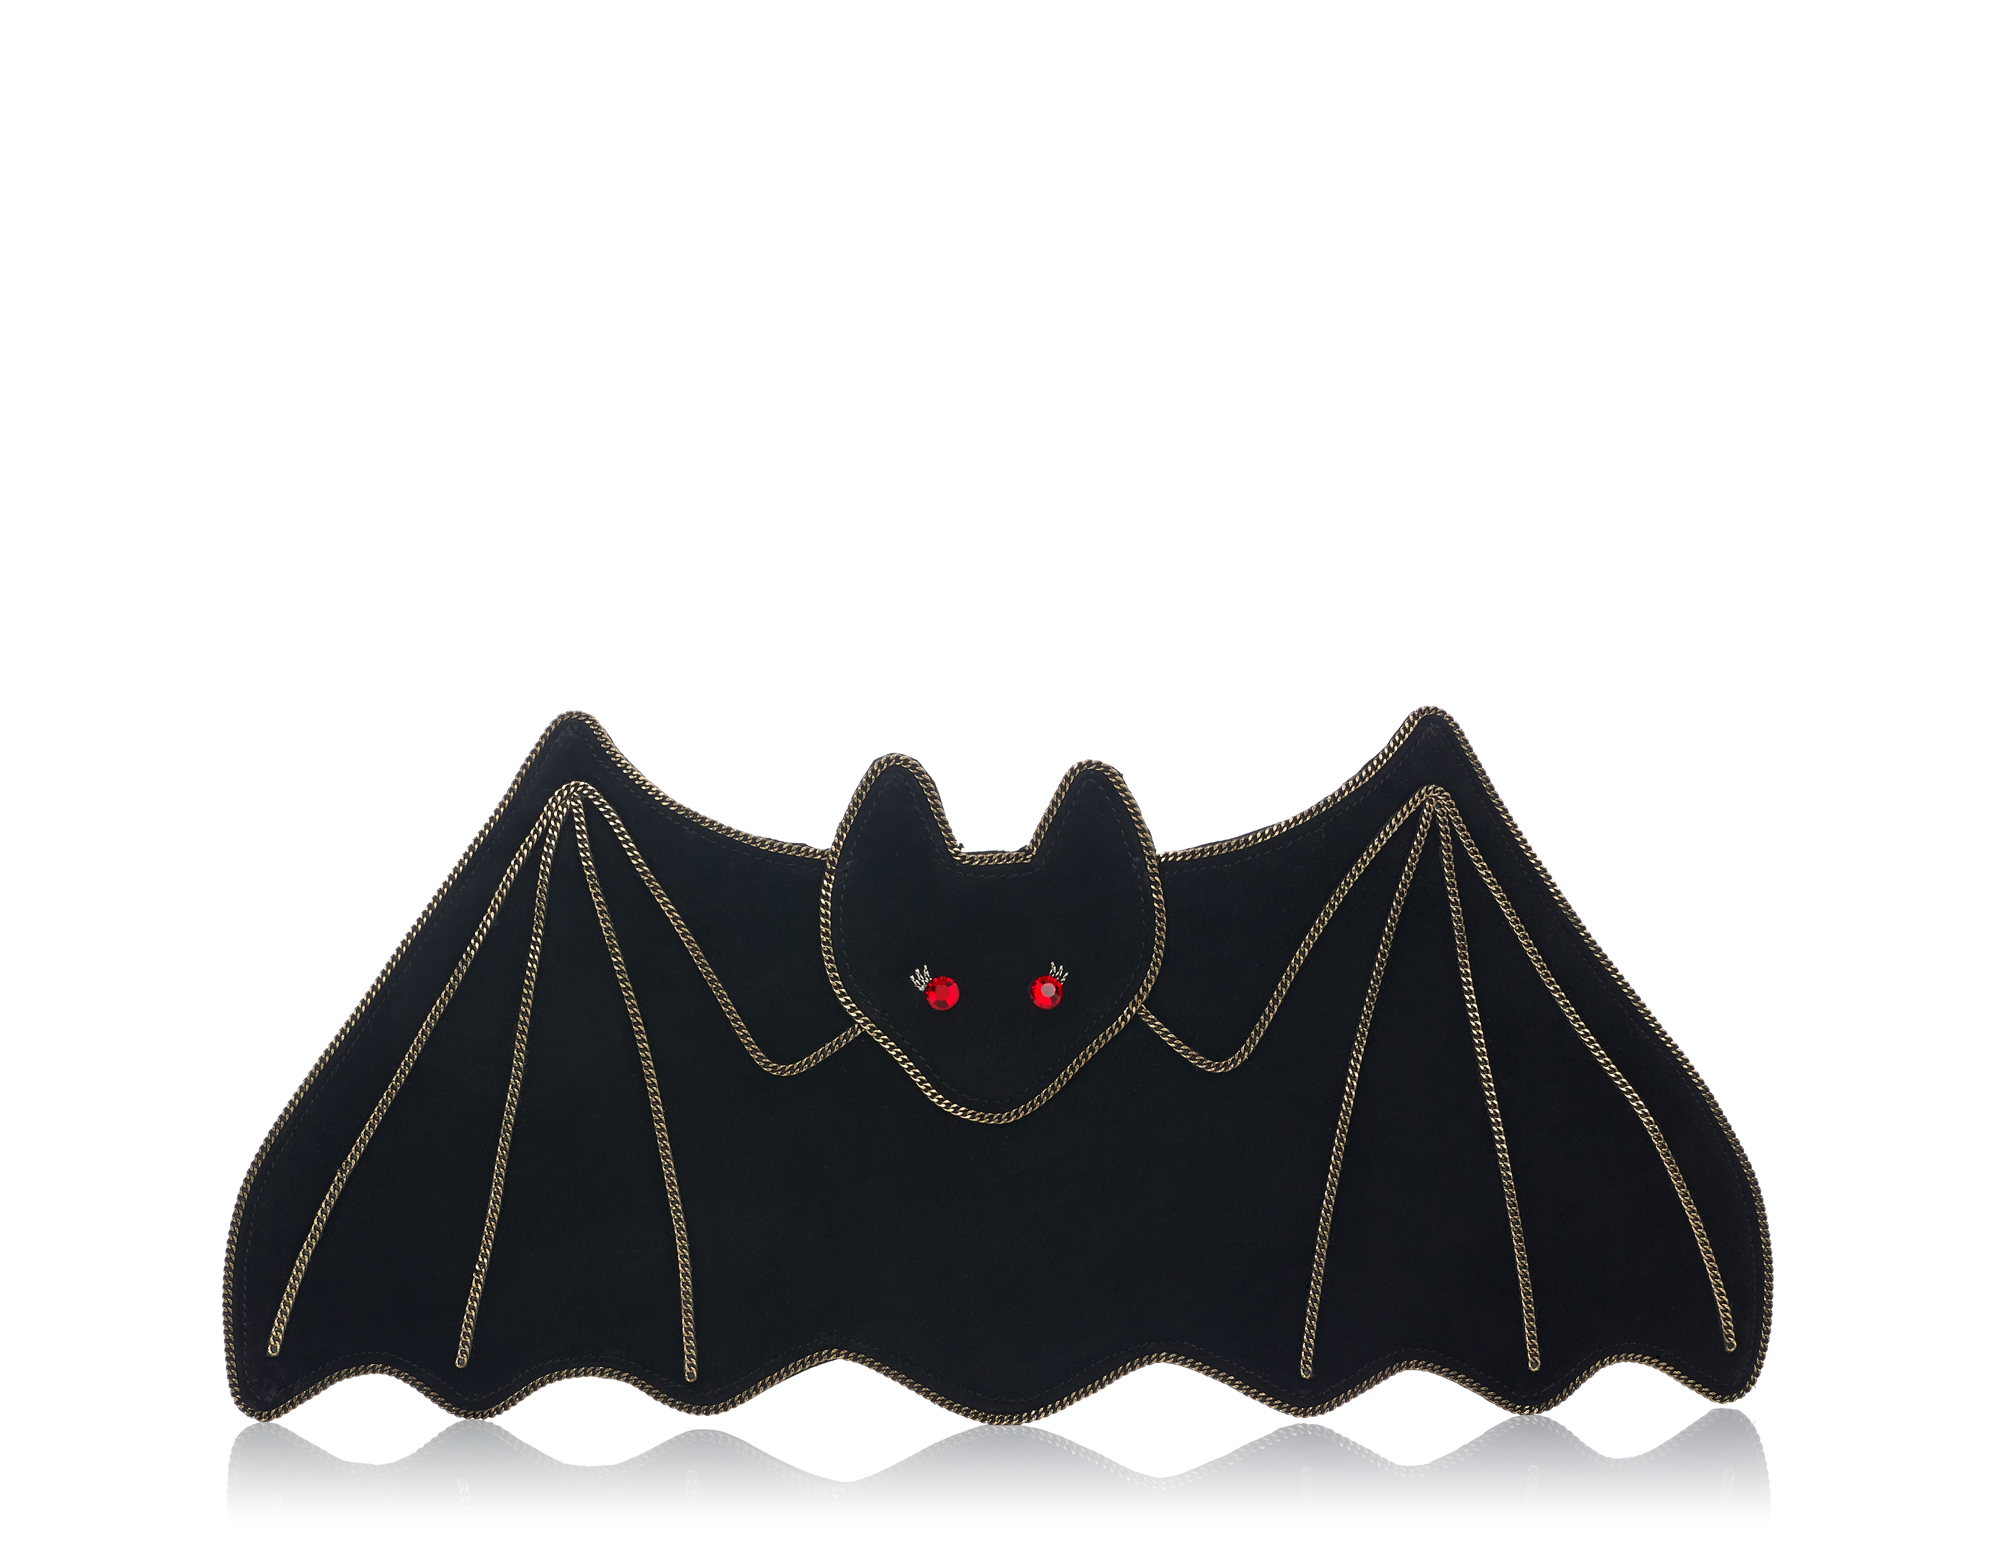 FANCYBAT black1